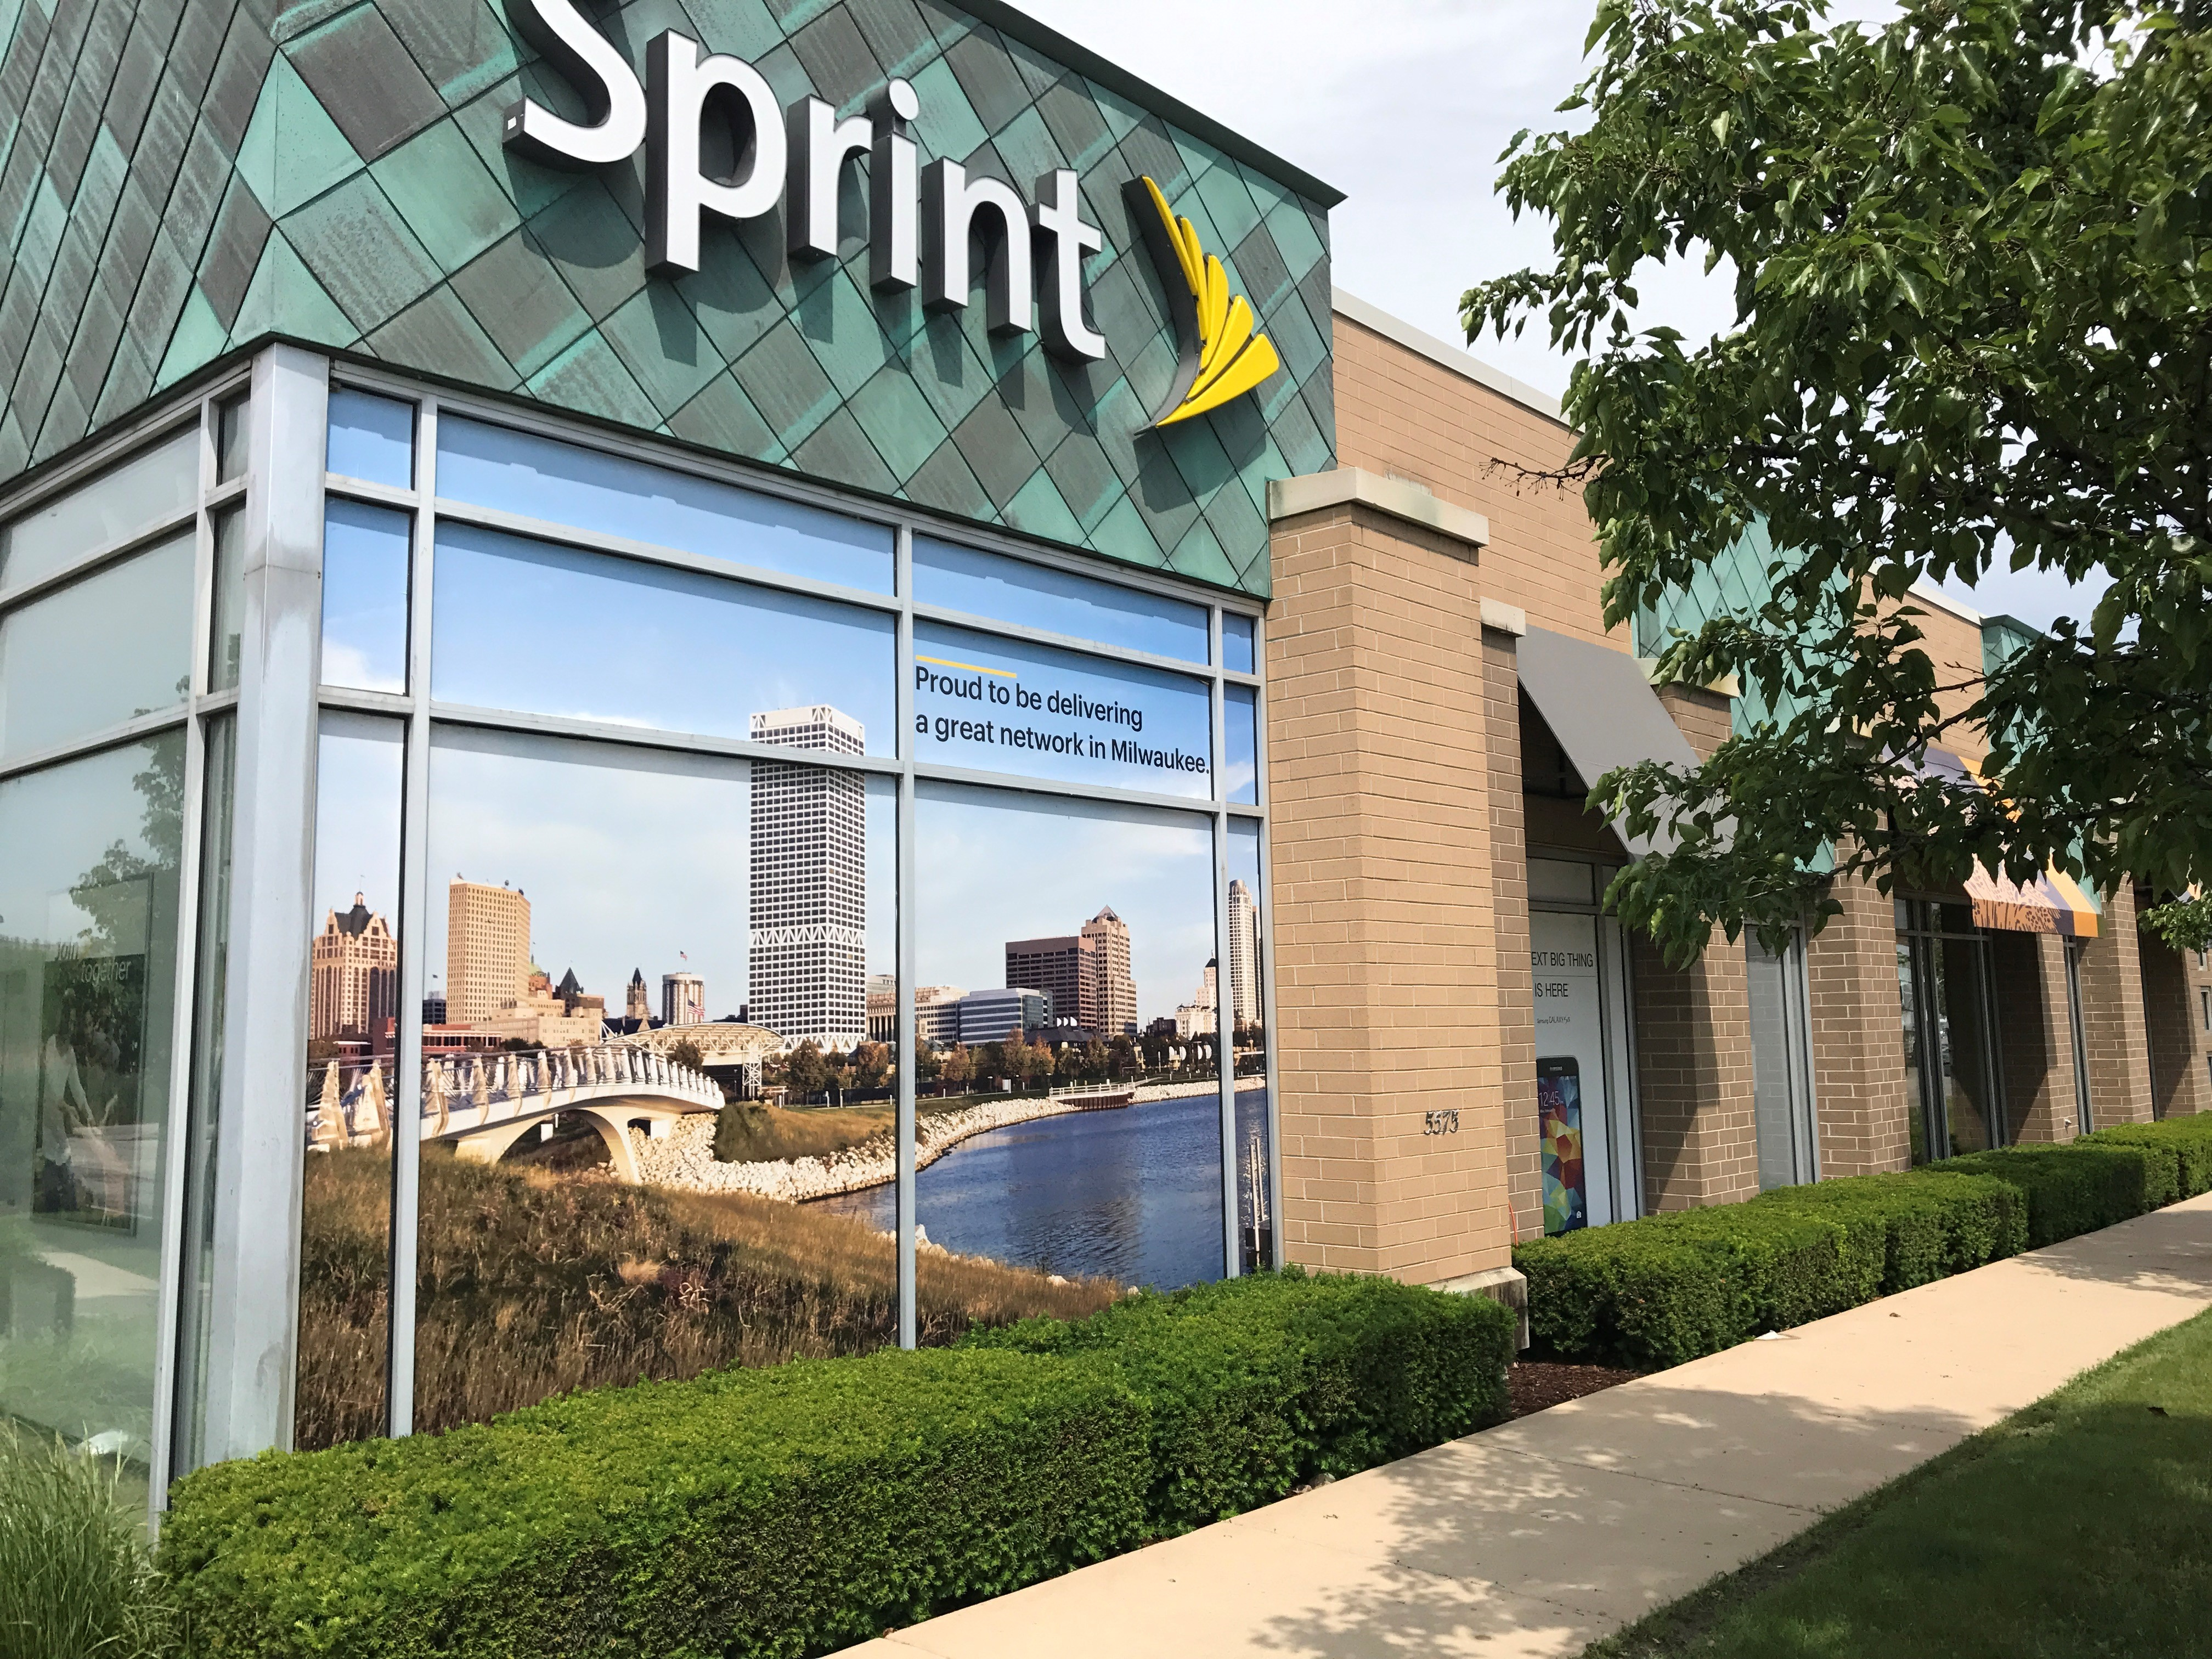 New Sprint store in Milwaukee. (Photo: Business Wire)